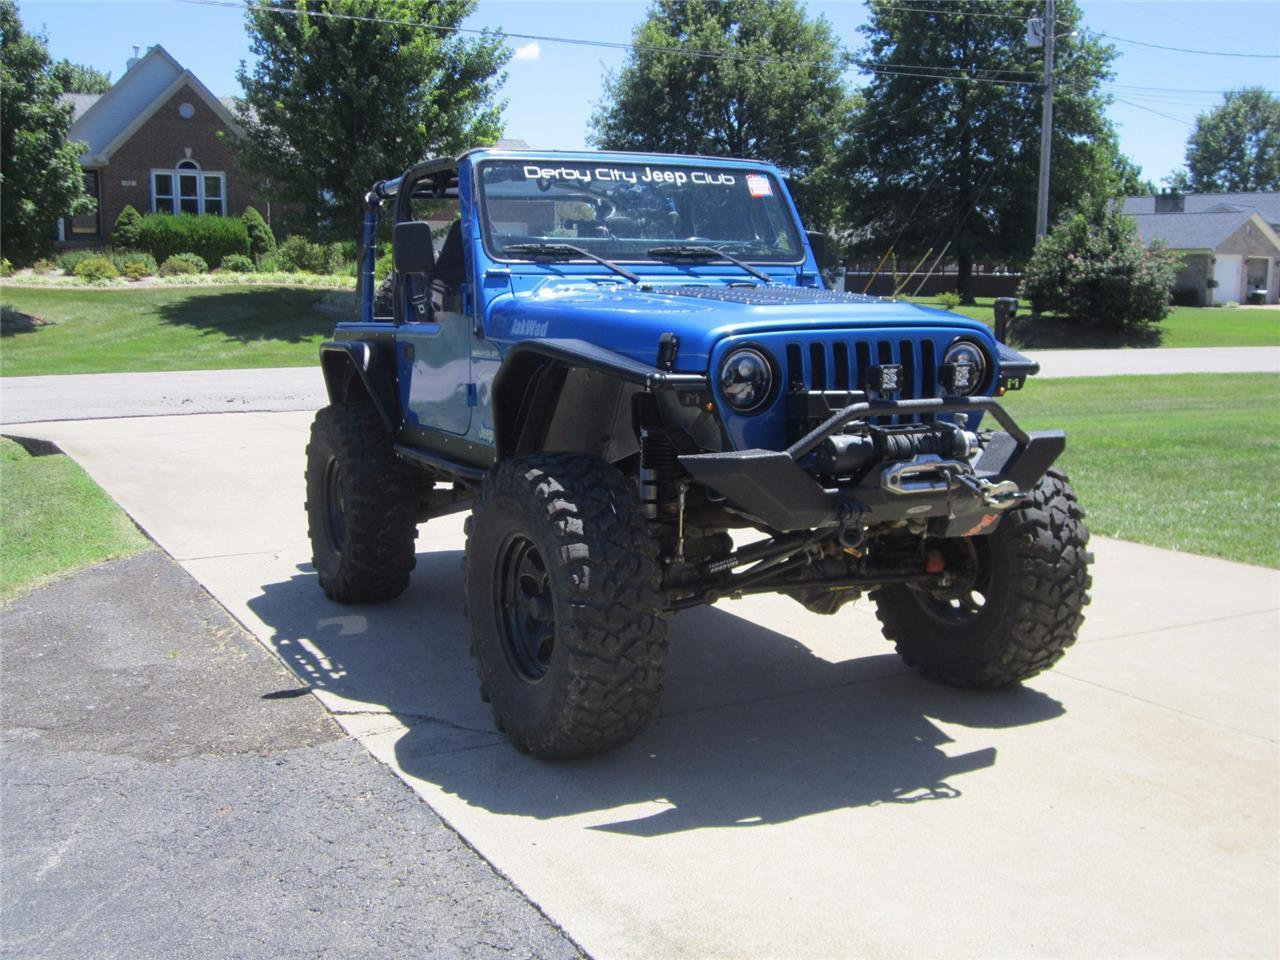 Best Tires For Jeep Wrangler >> 2002 Jeep Wrangler Offroad Ready – Heavily Modified Custom ...